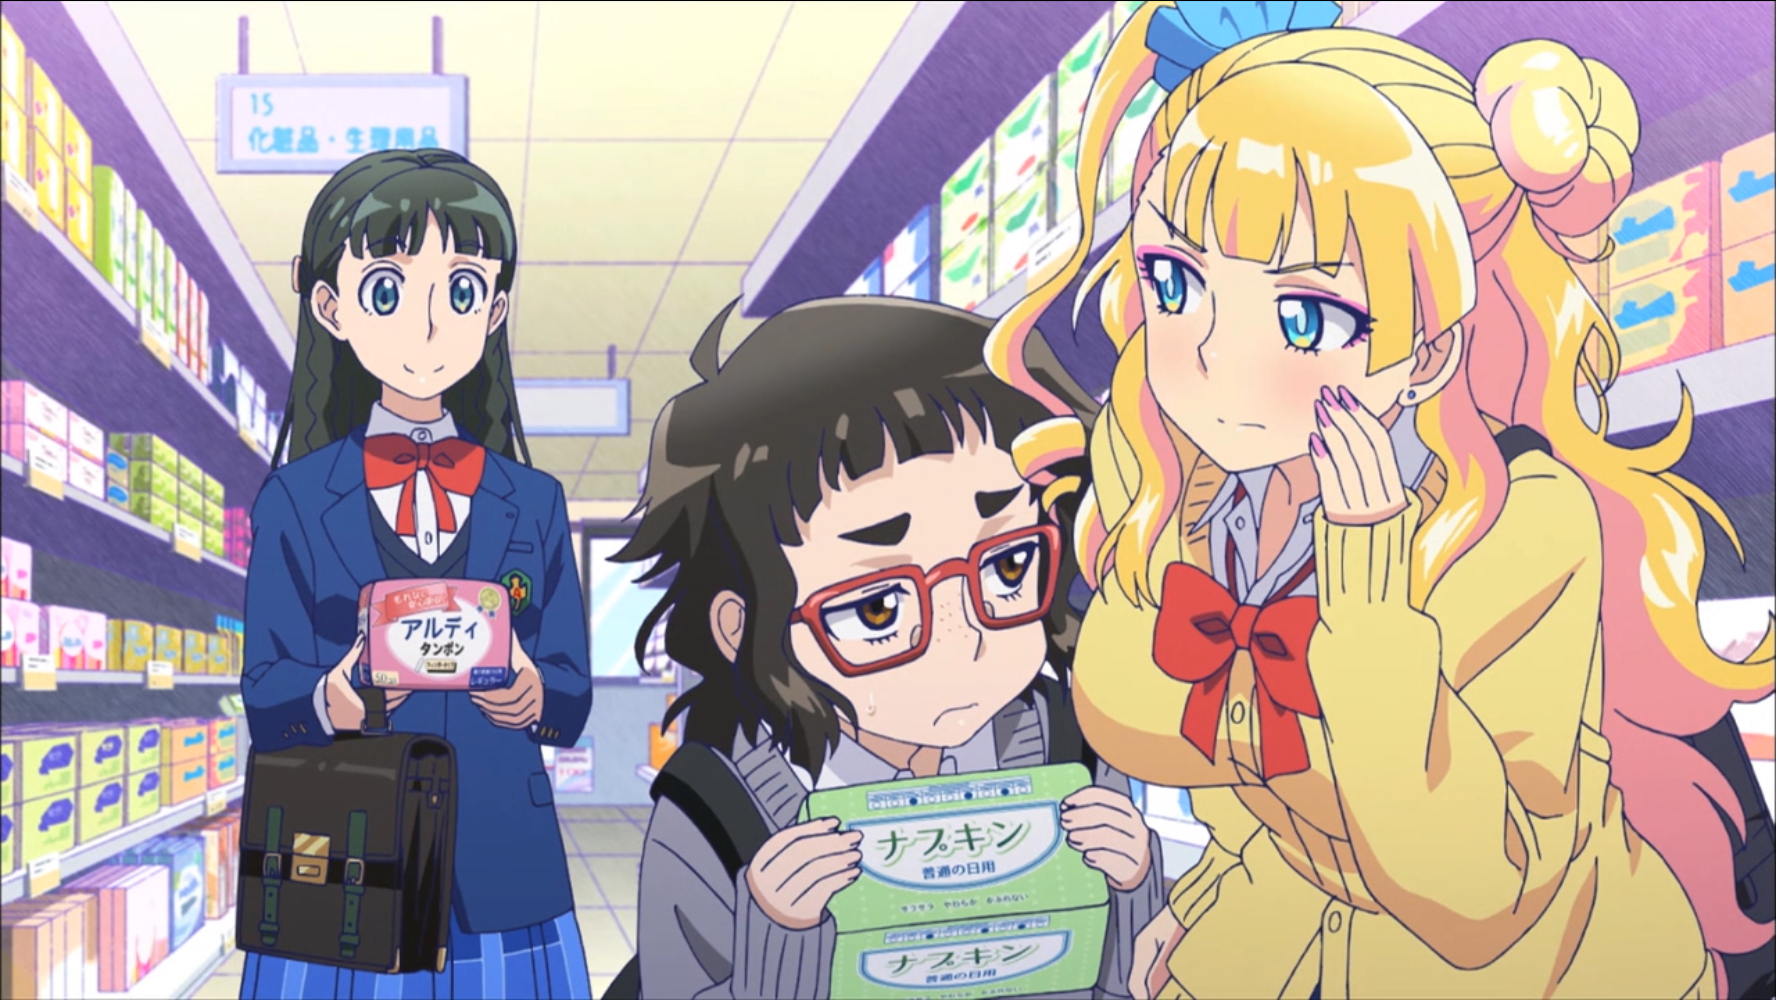 Ojou, Otako, and Galko gossip while purchasing feminine hygiene products in a scene from the 2016 Please tell me! Galko-chan TV anime.